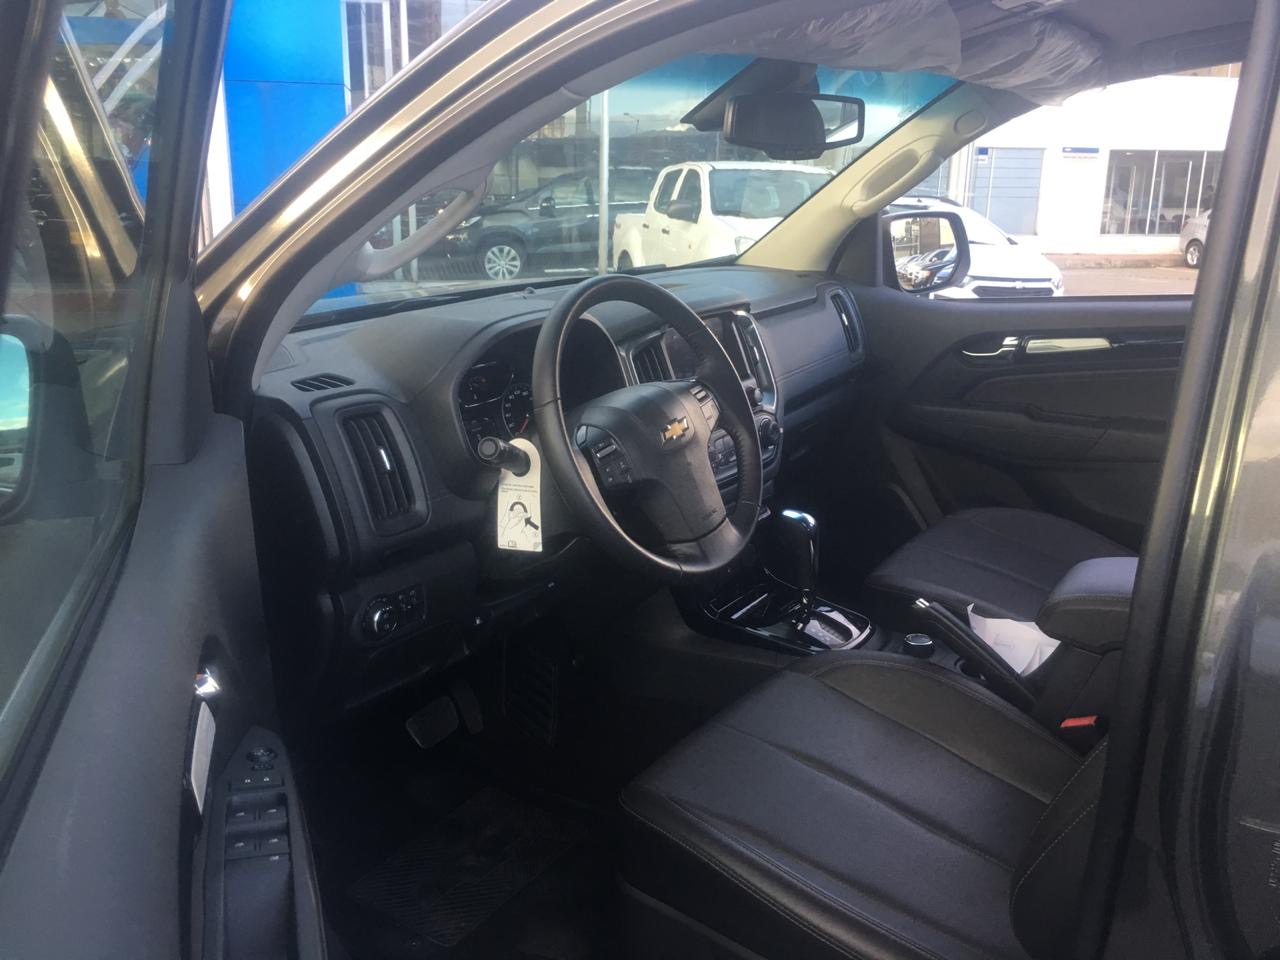 2019 CHEVROLET TRAILBLAZER E4 AT LTZ PASAJEROS 2.8L